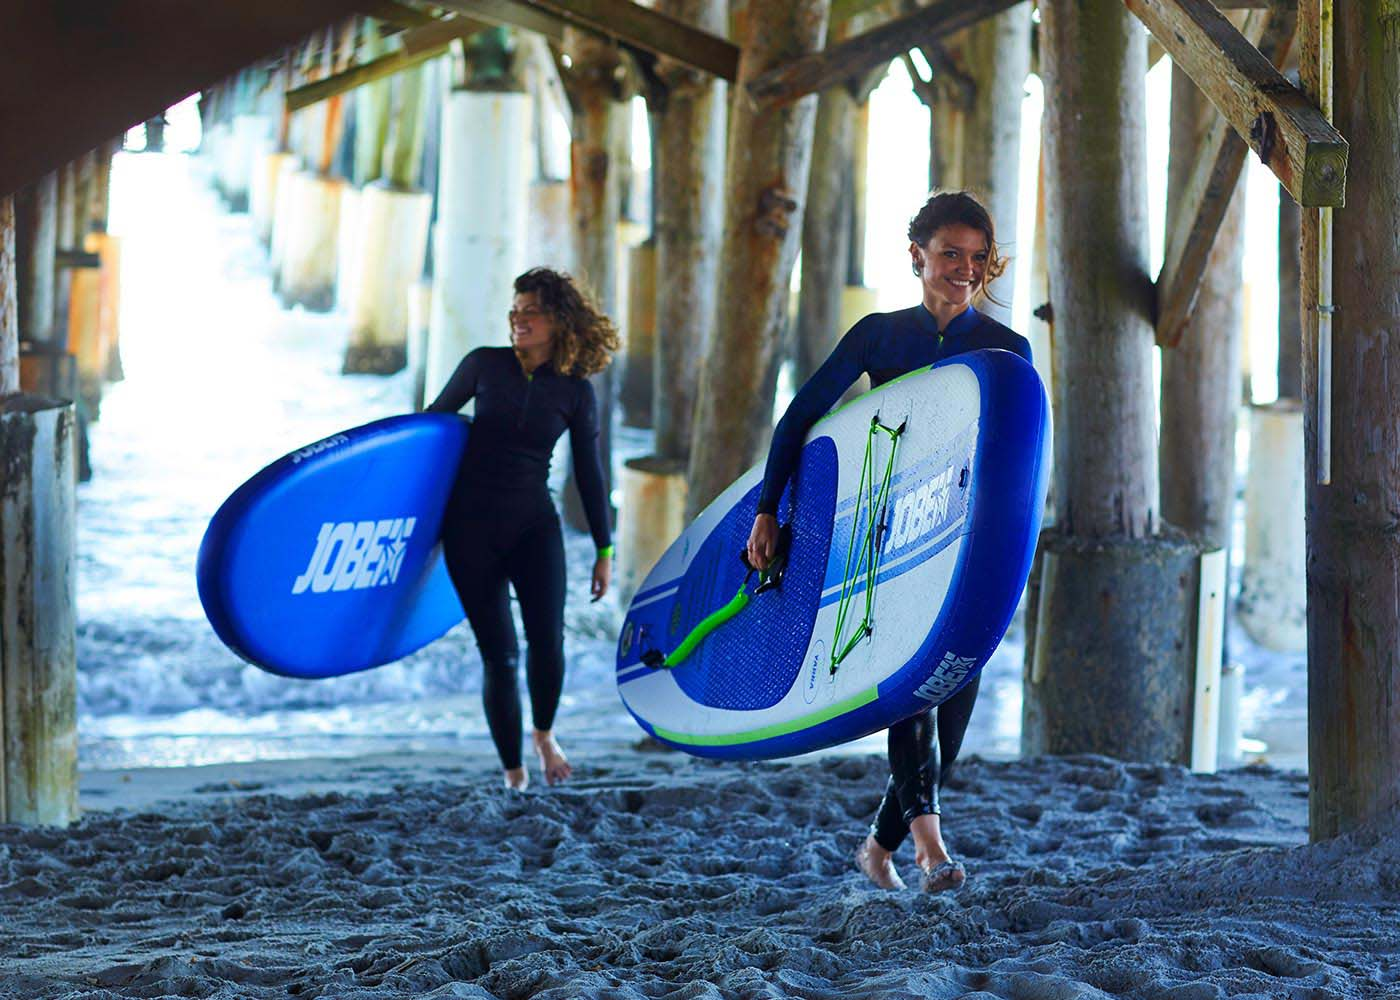 Paddle Boards - Inflatable Paddle Boards